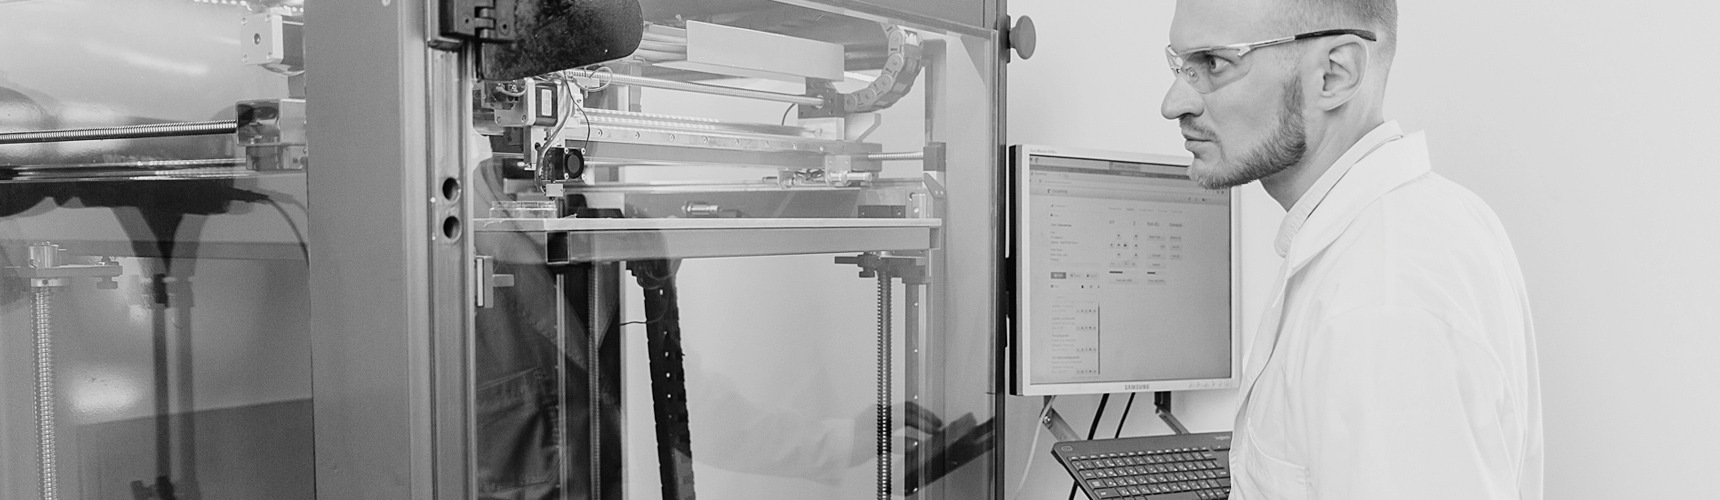 CUSTOM SOFTWARE FOR TISSUE ENGINEERING & 3D PRINTERS